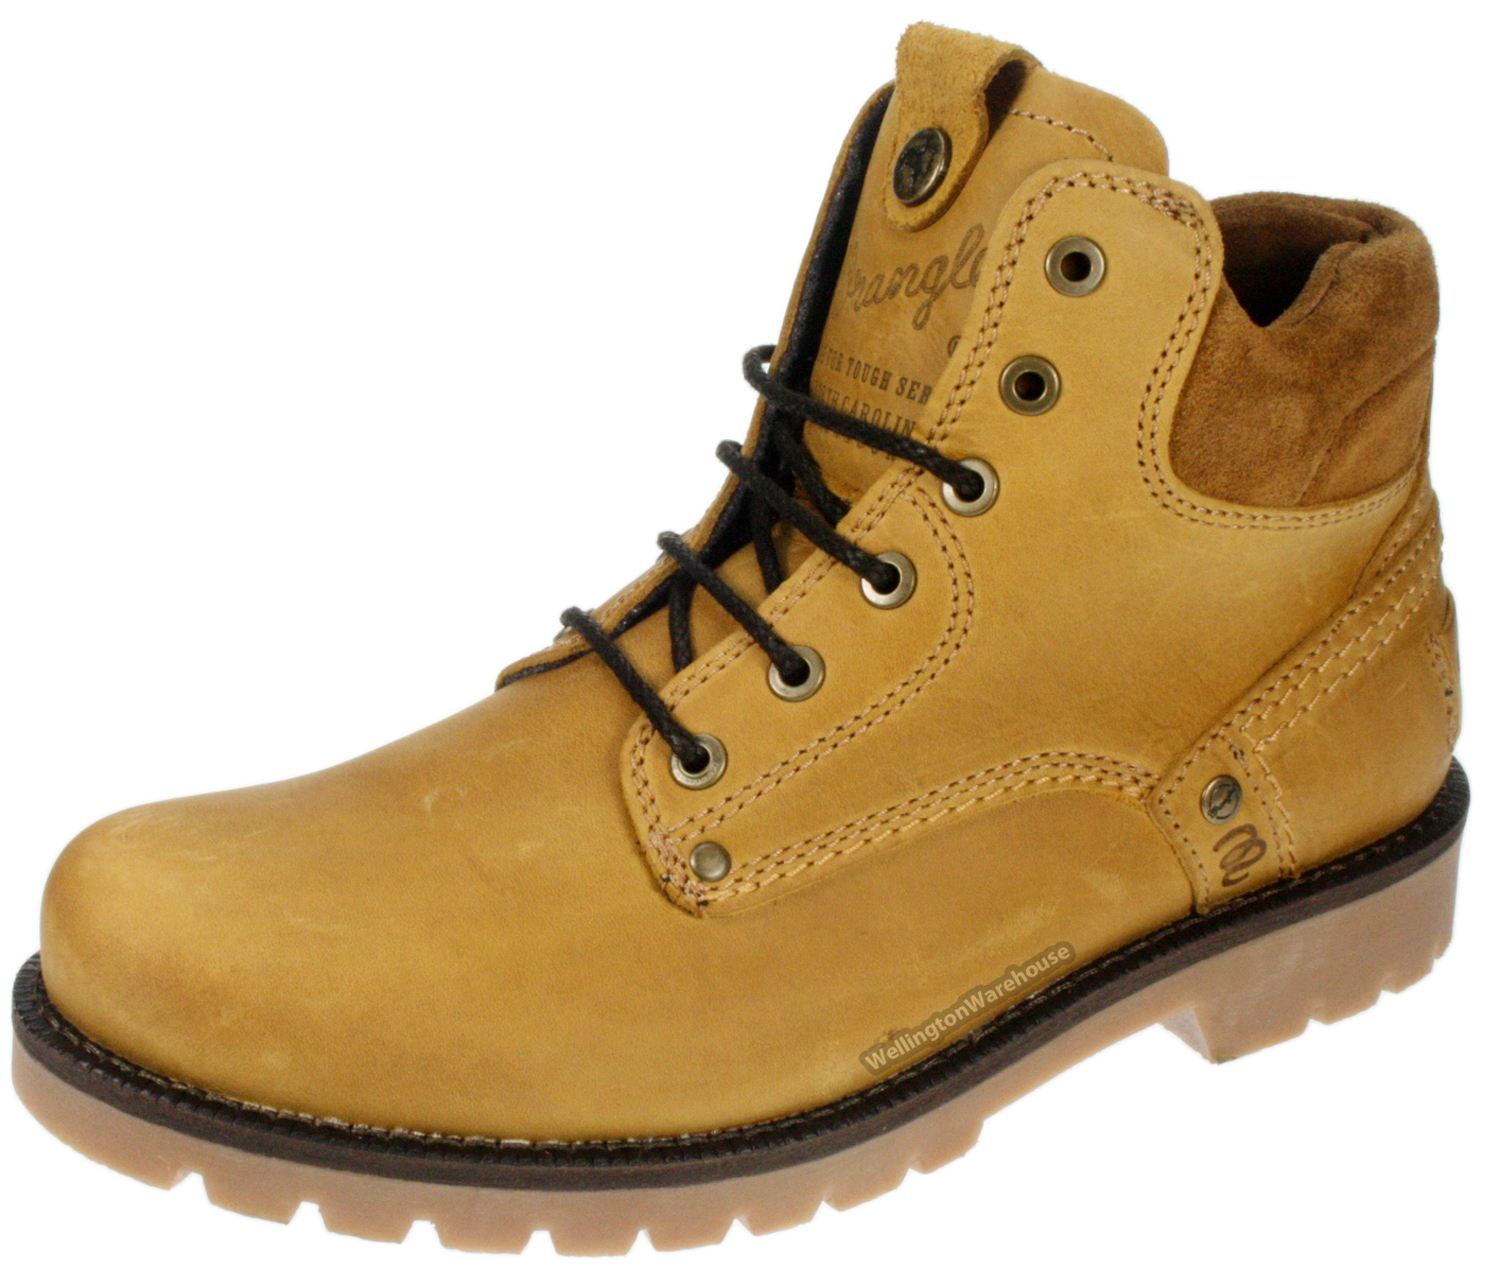 Chaussure À Lacets Wrangler IKYcW9B6x